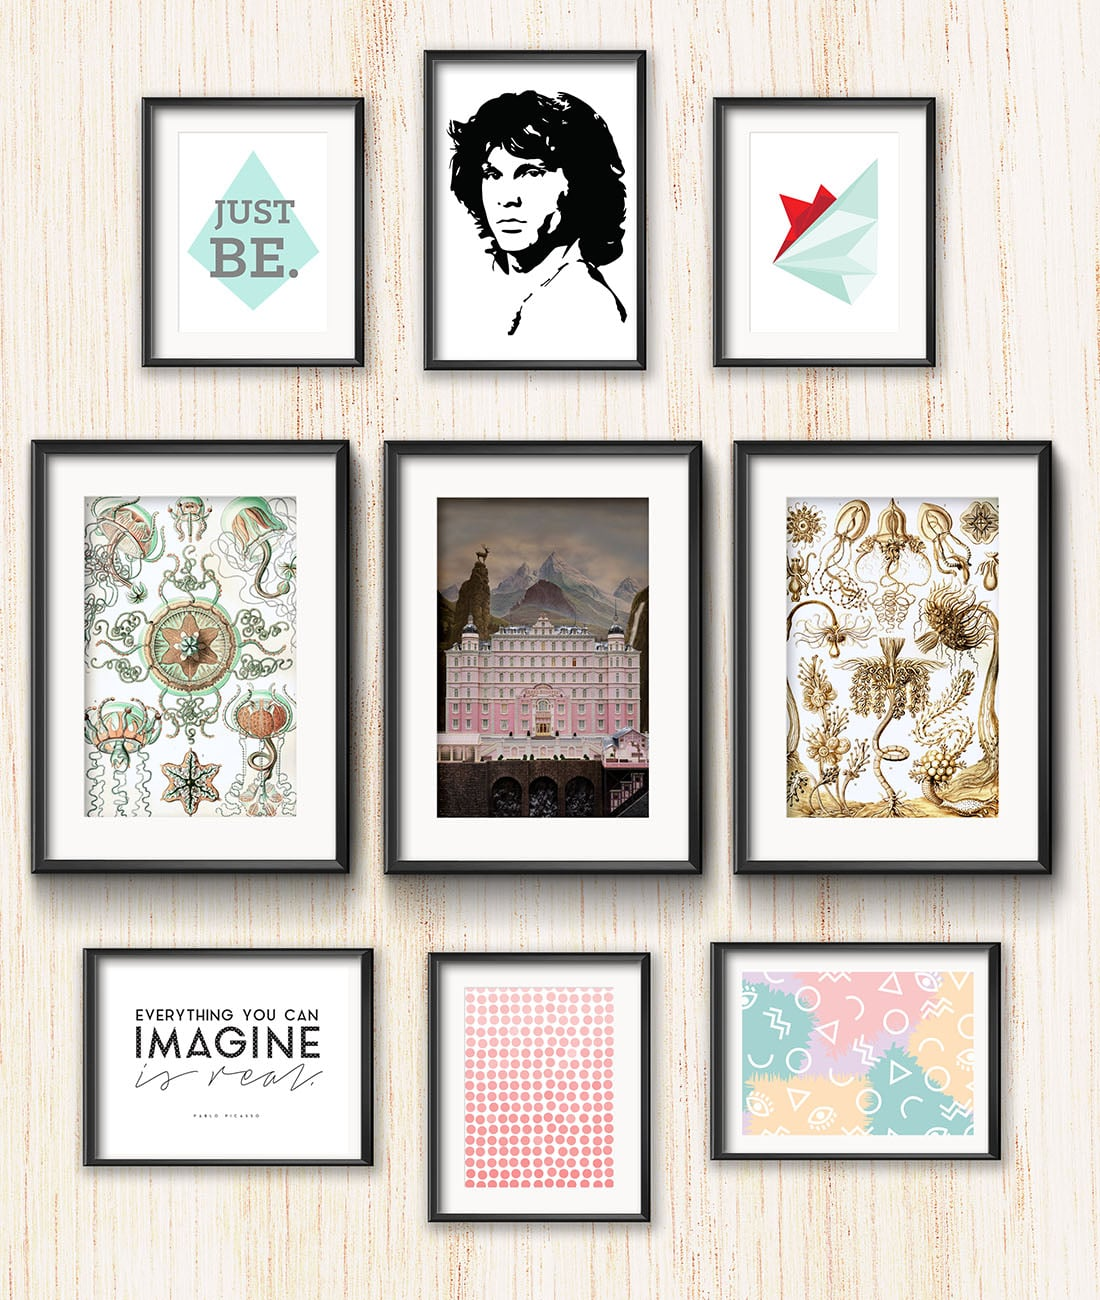 California Beach Vibe Gallery Wall • Frame Game is an occasional series in which I take readers' gallery wall requests and find art that fits their personalities • Little Gold Pixel